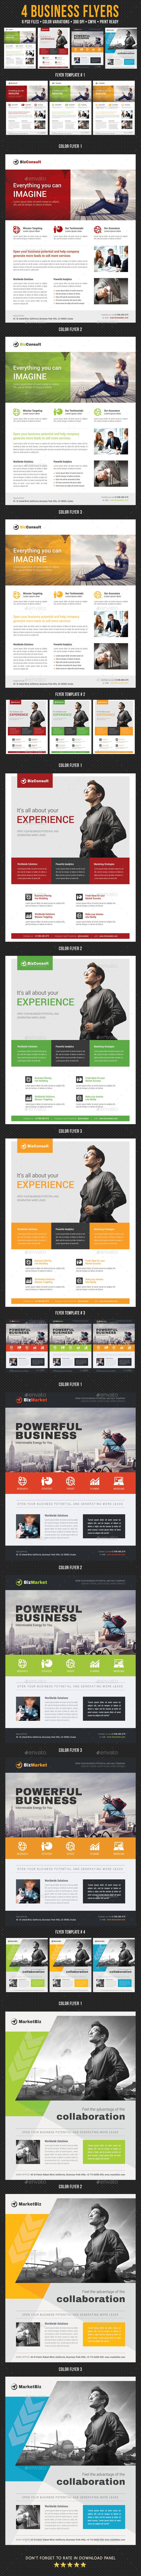 4 Corporate Business Flyer Templates Bundle #V5 - #Corporate #Flyers